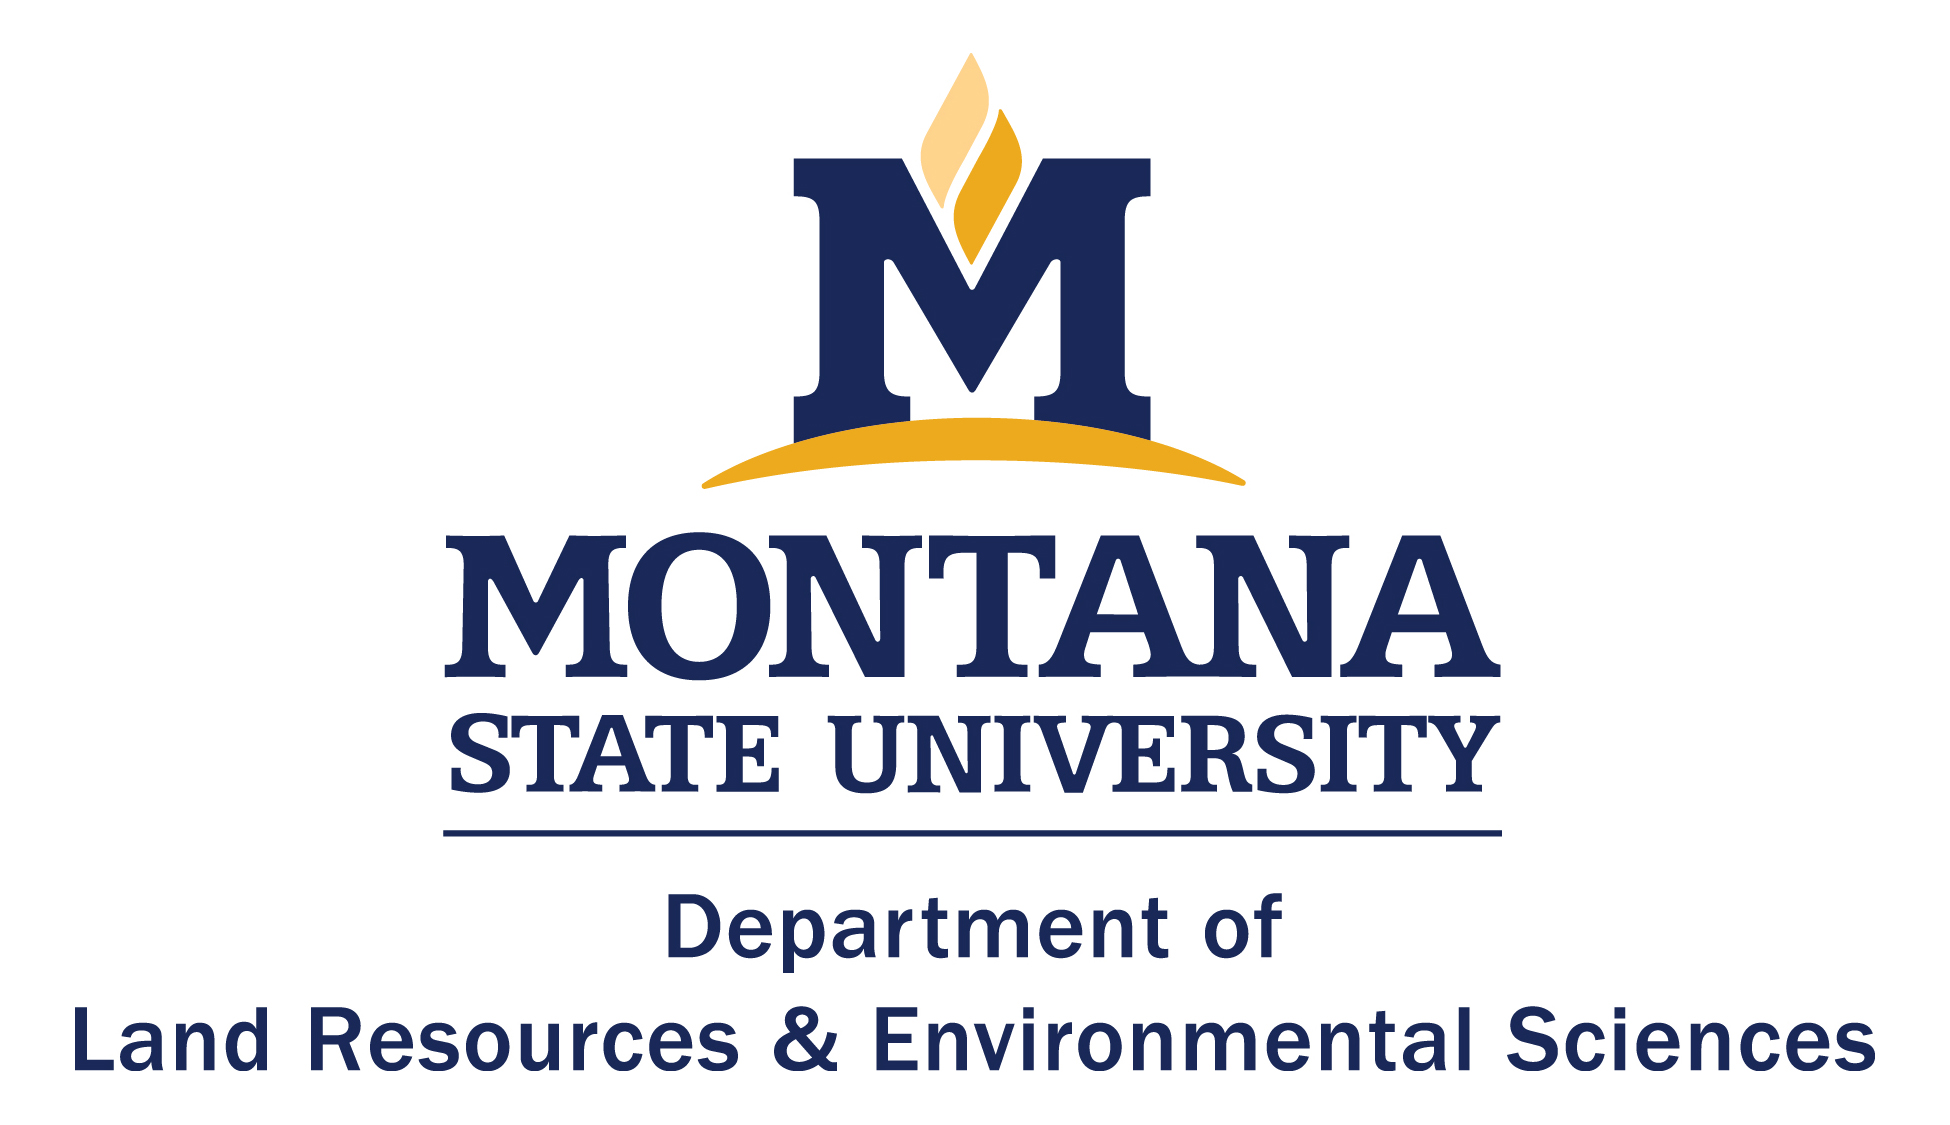 land resources land as a resource environmental sciences essay Ap environmental science- kearny high school sct mrs ogo: share this site info for essay: are engineered foods evil info for essay: seeds of concern do: land use and fires analyzing land use in urban environments.